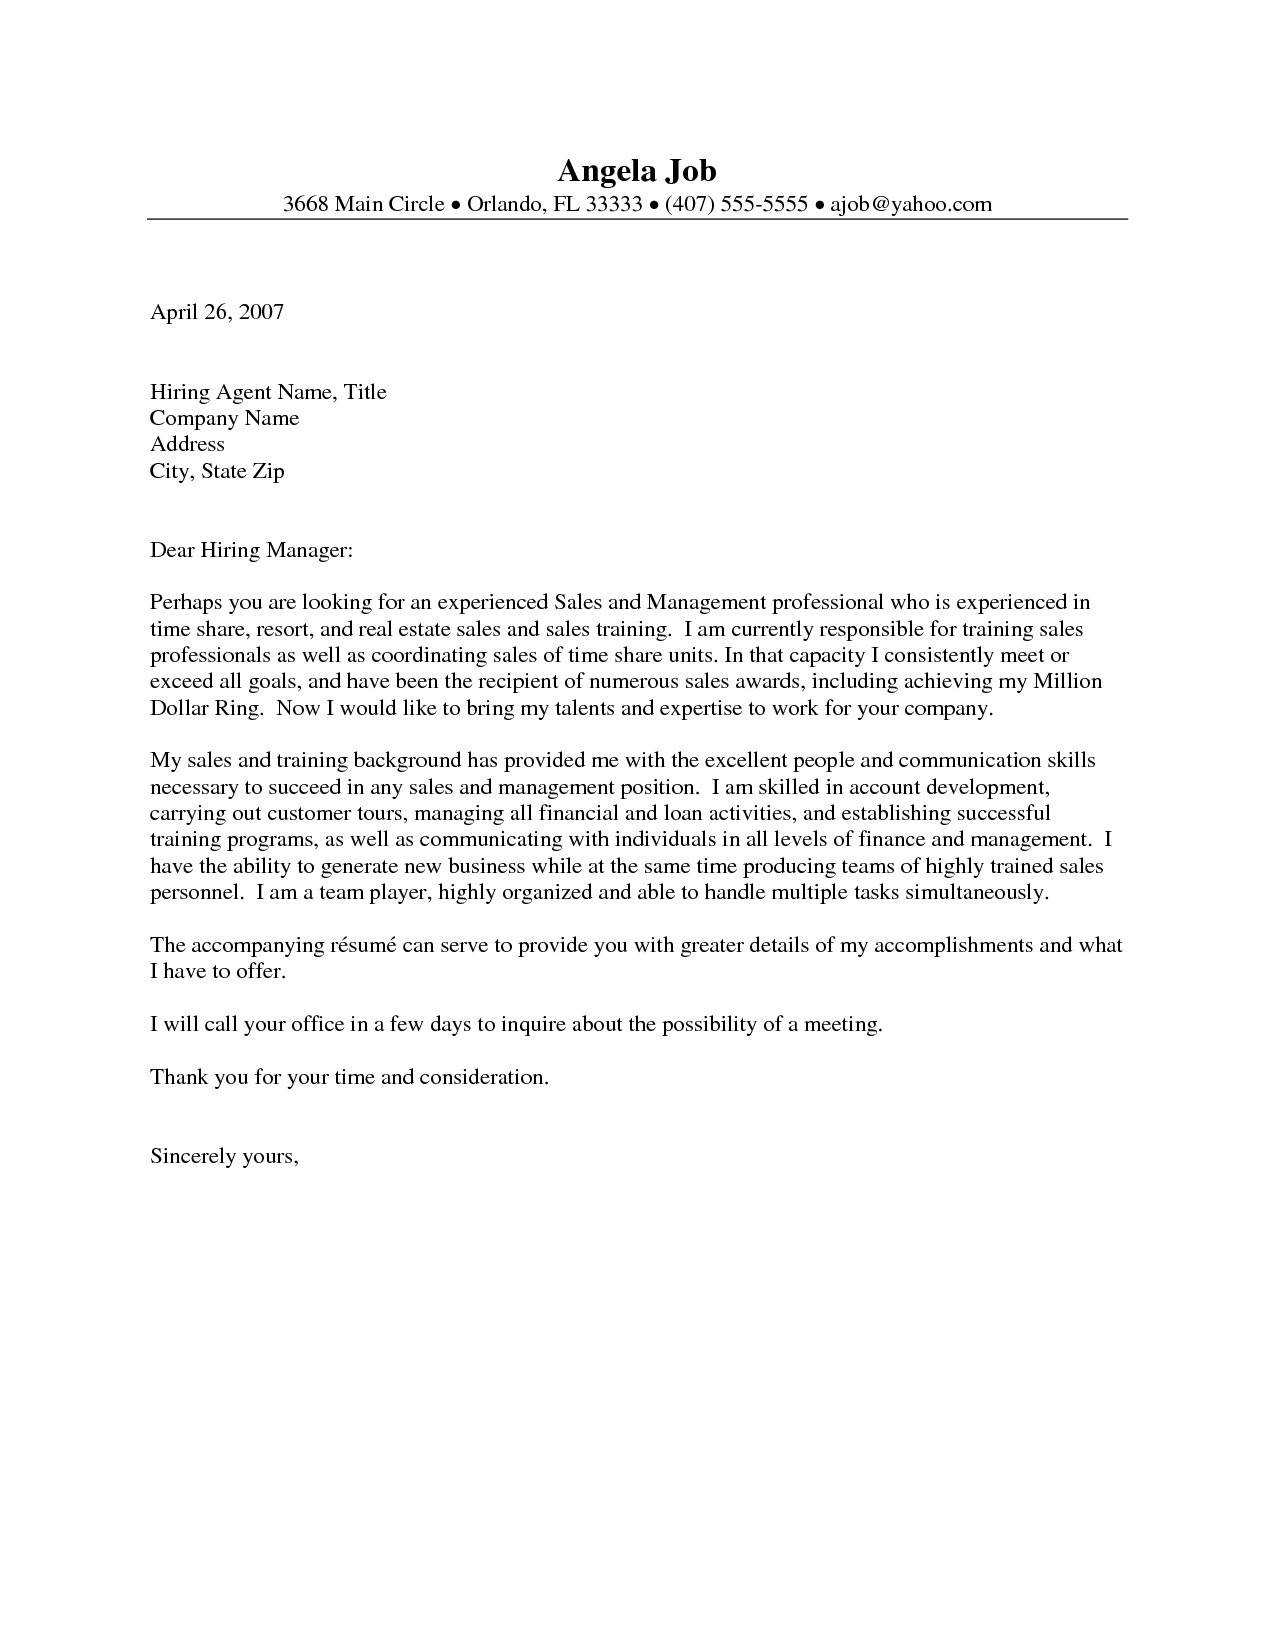 Real Estate Cover Letter Template